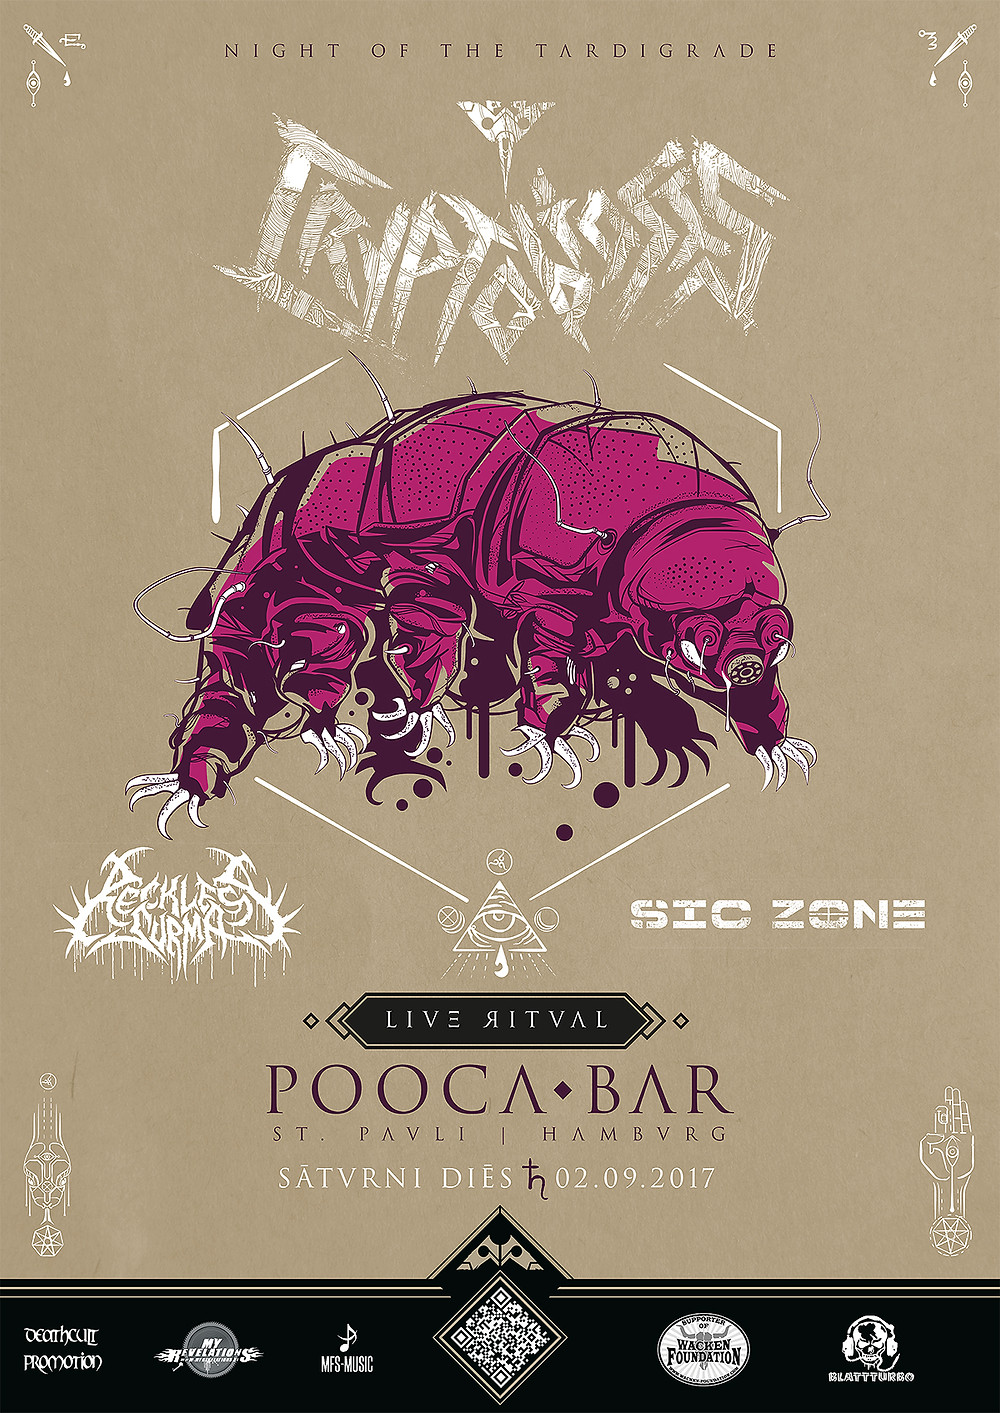 Night of the Tardigrade | Cryptobiosis live at Pooca Bar